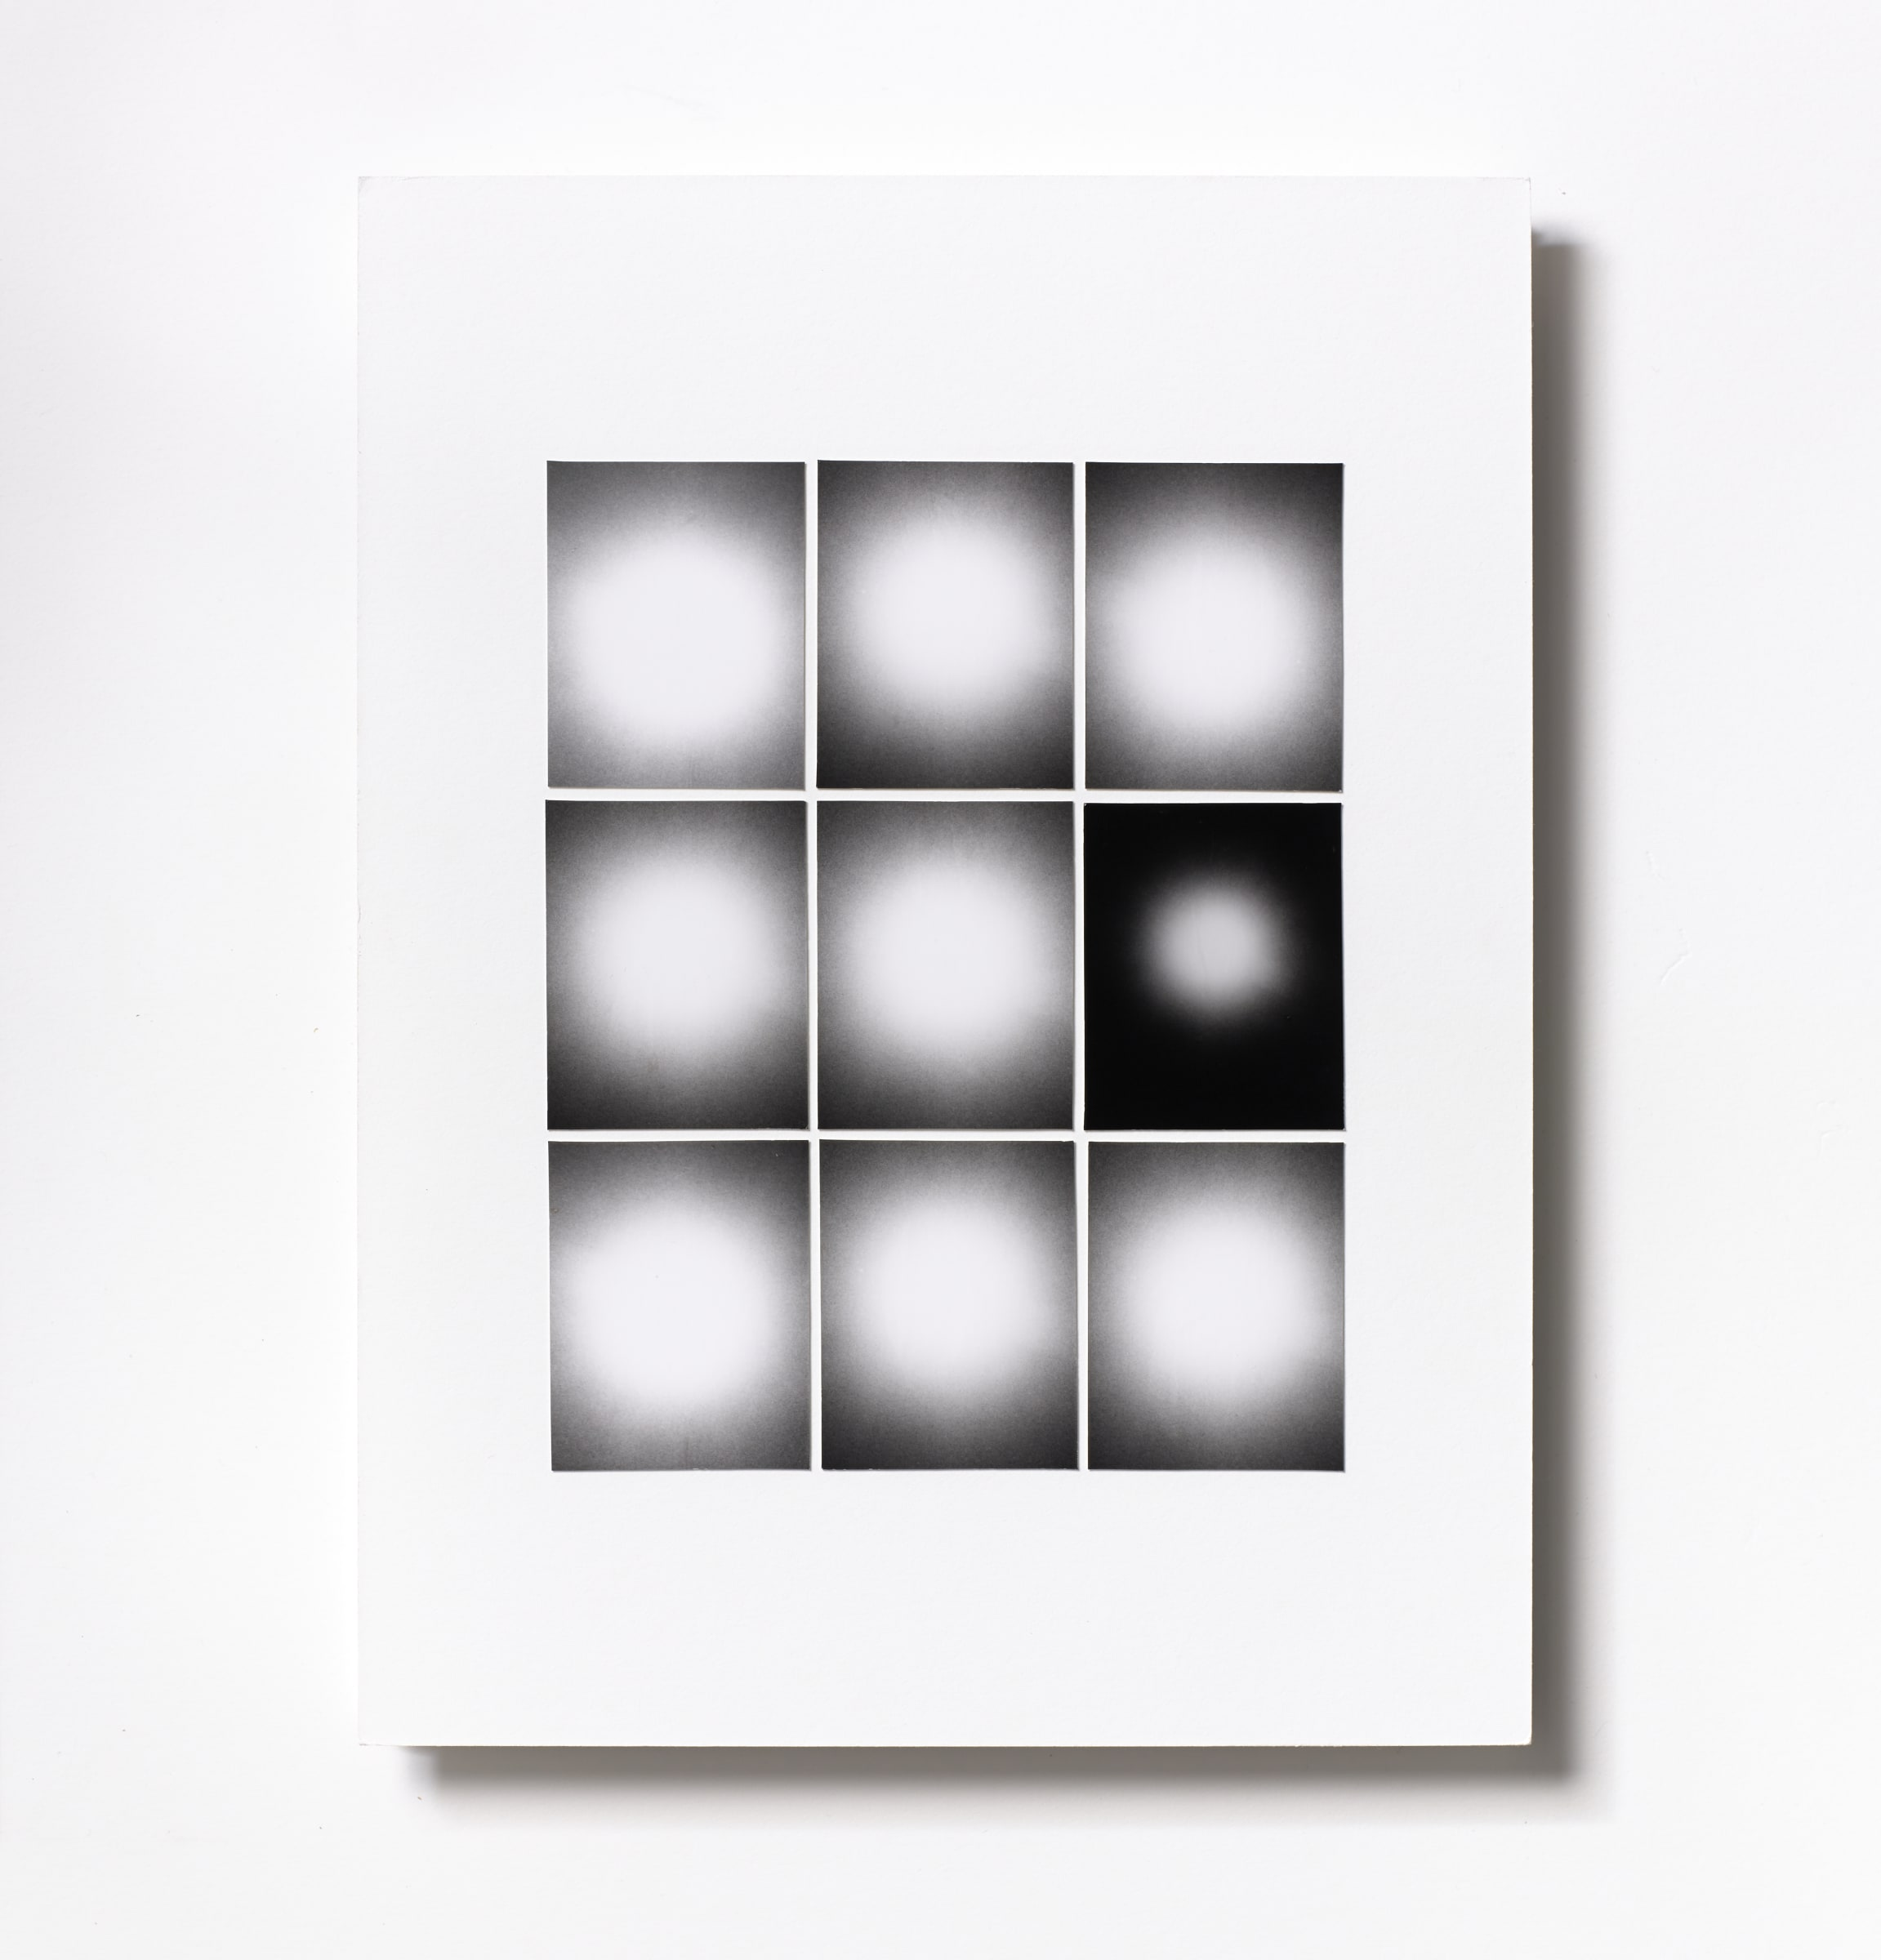 "<span class=""link fancybox-details-link""><a href=""/content/feature/114/artworks547/"">View Detail Page</a></span><div class=""medium"">Silver Gelatin Photogram Print Collage of nine handmade 2.5"" x 2"" silver gelatin prints from film negatives on a 12 x 9 inch 8-ply museum board.<br /> Unique<br /> Floated in a handmade white box frame with Optium Museum Acrylic glaze</div> <div class=""dimensions"">30.5 x 22.9 cm<br /> 12 x 9 in</div>"